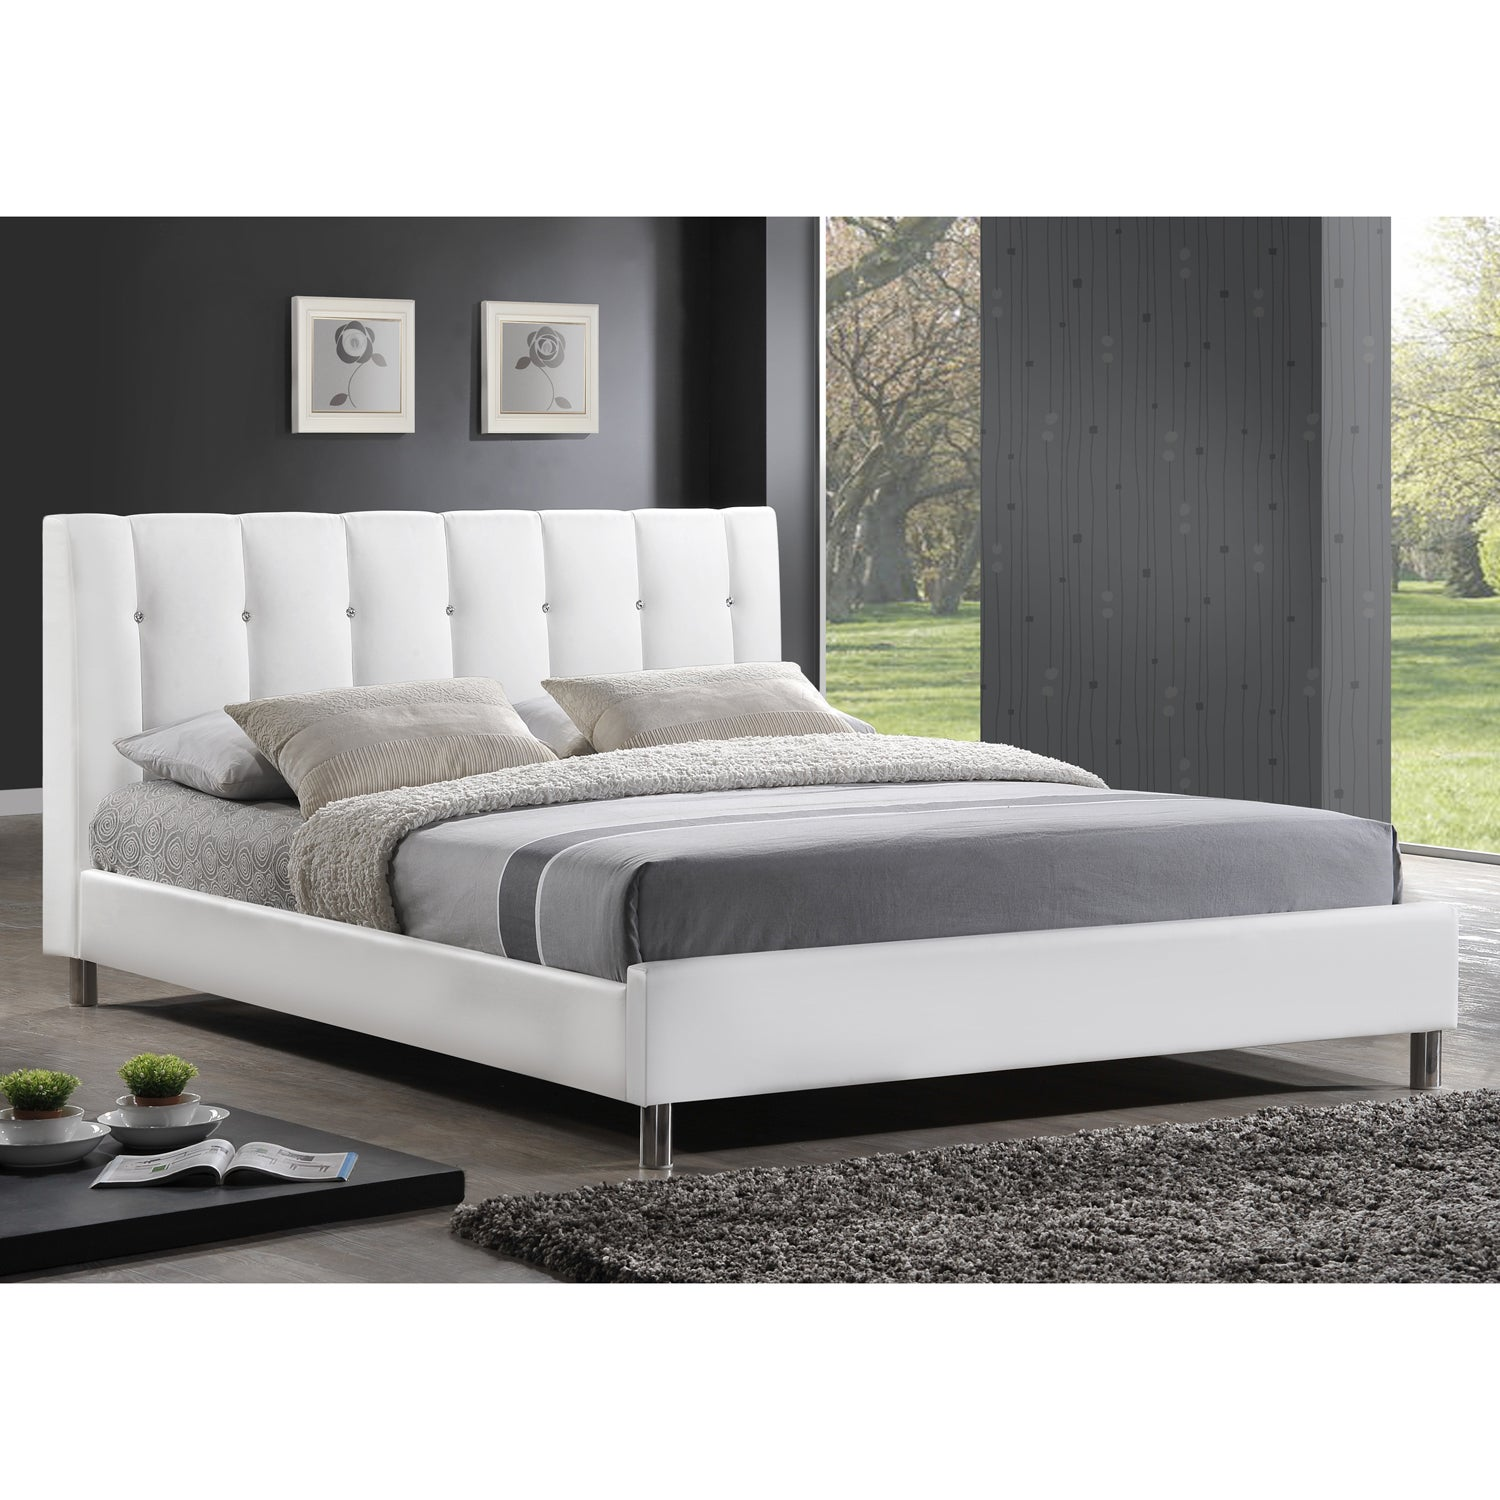 Exceptionnel Shop Baxton Studio Vino Modern Upholstered Full Bed   Free Shipping Today    Overstock   20543398